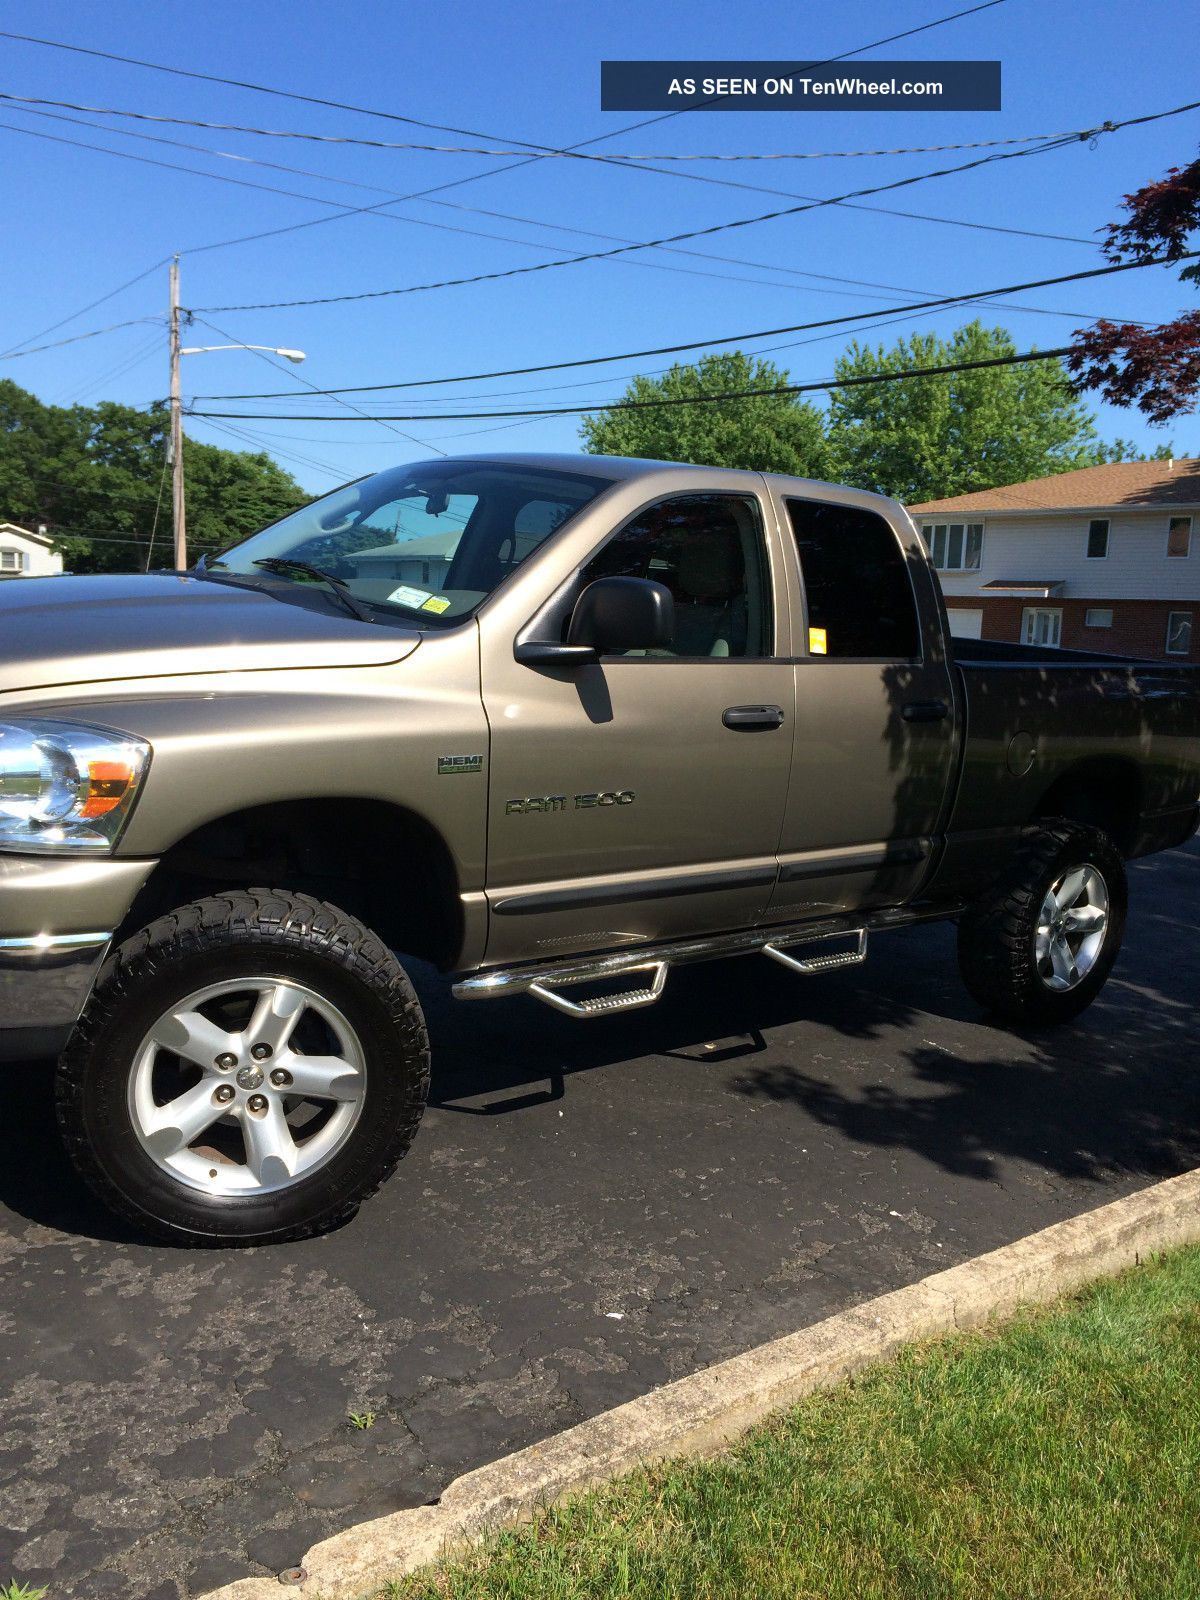 2007 dodge ram 1500 trx4 crew cab pickup 4 door 5 7l. Black Bedroom Furniture Sets. Home Design Ideas